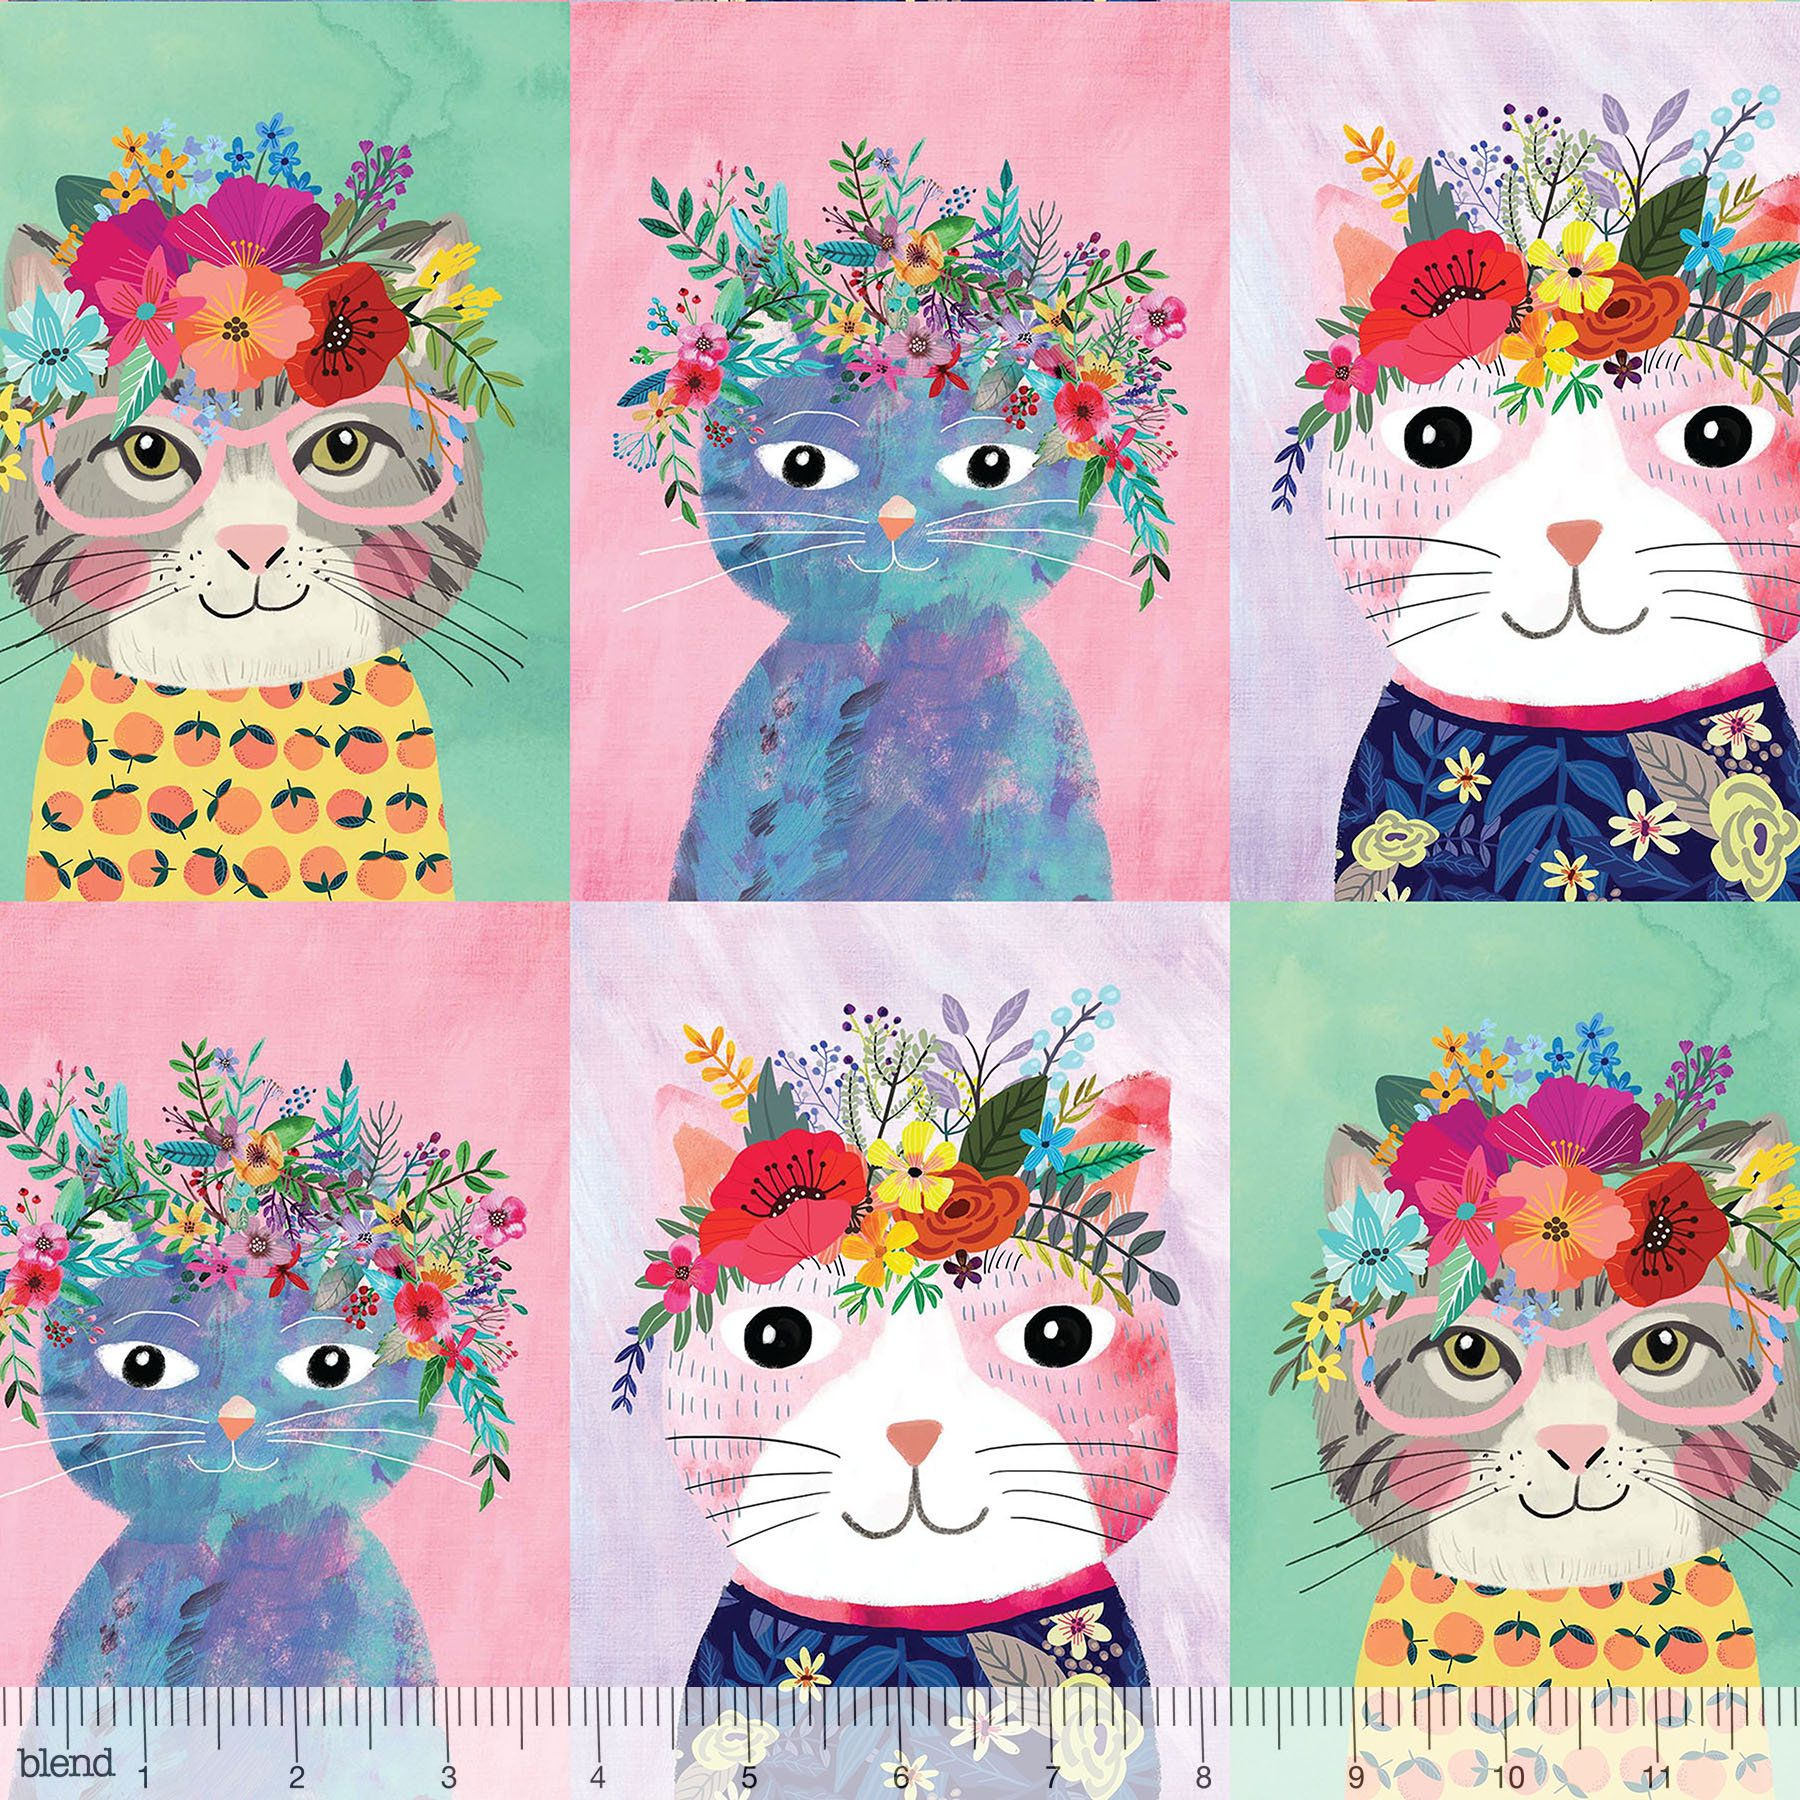 Floral Kitty Multi – Mia Charro – Floral Pets – Blend Fabric Pertaining To Current Blended Fabric Fruity Bouquets Wall Hangings (View 2 of 20)